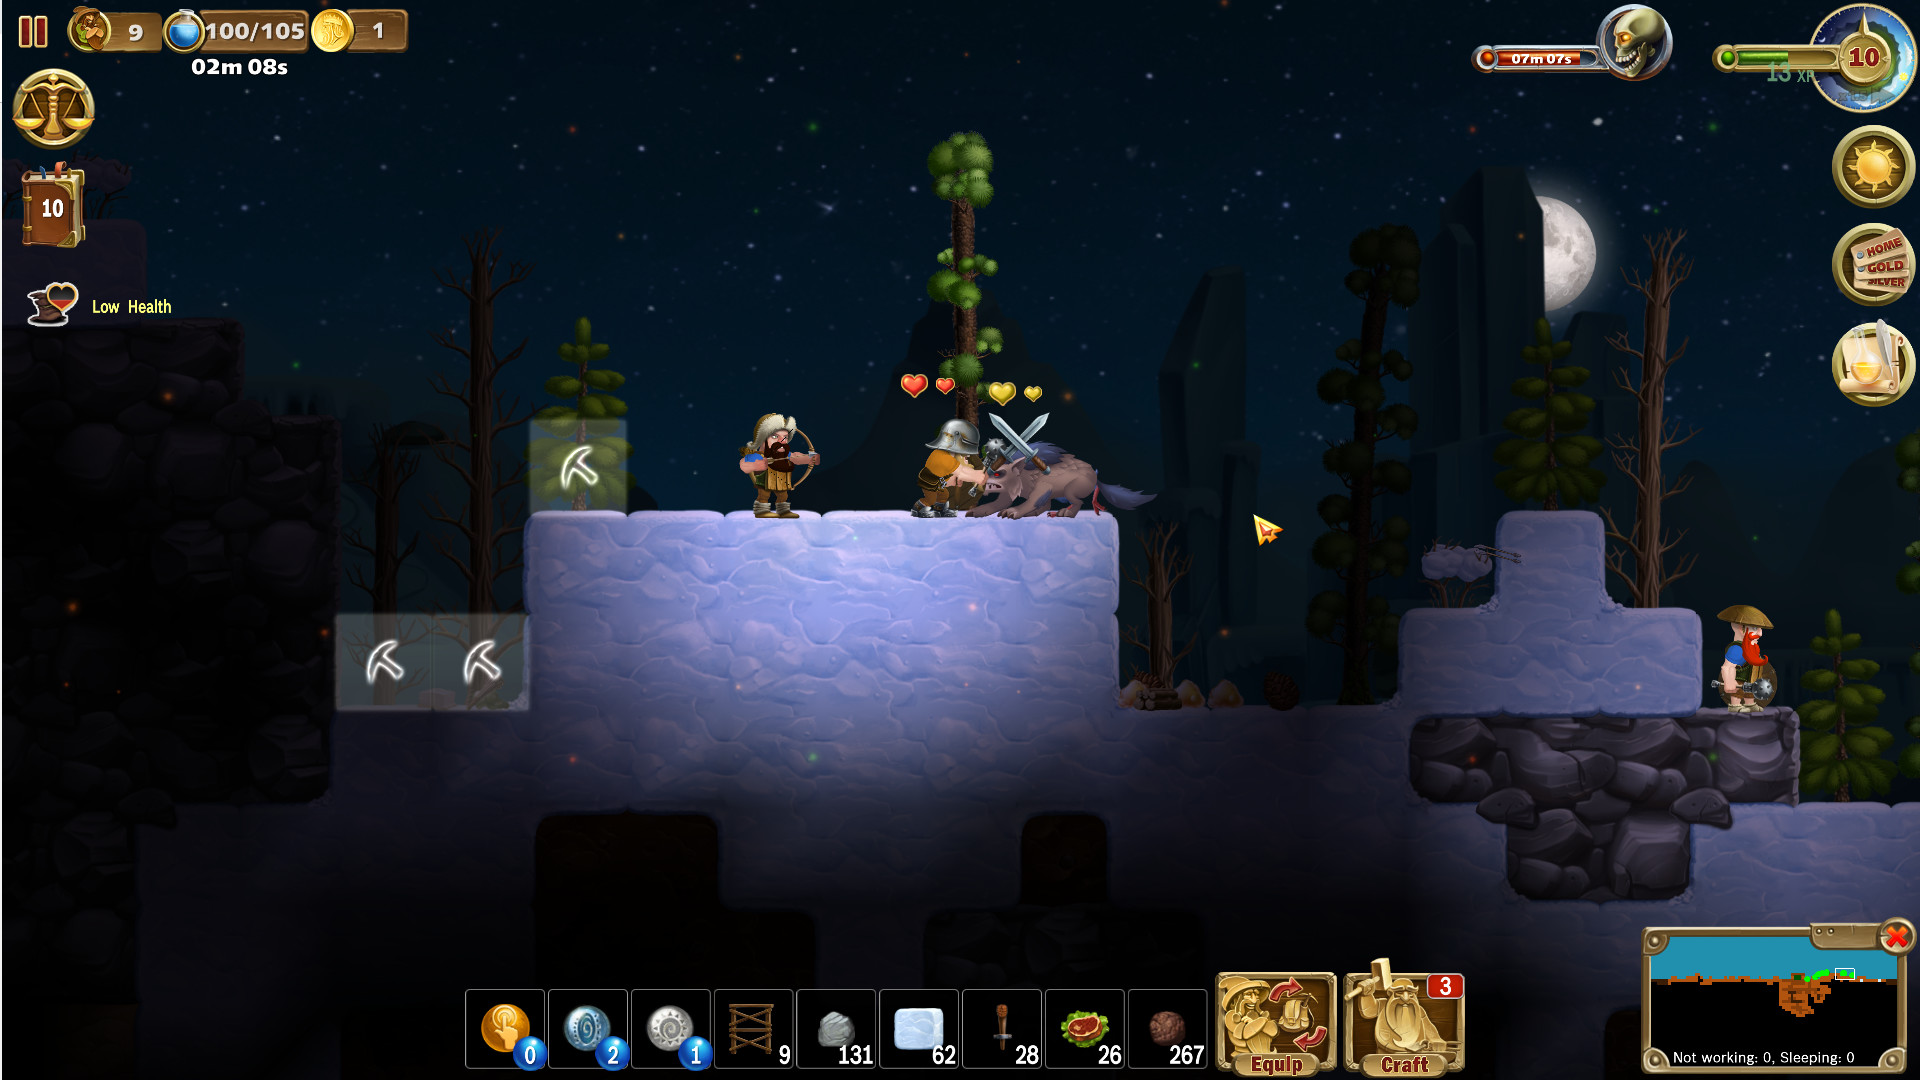 Craft the world - bosses & monsters download torrent